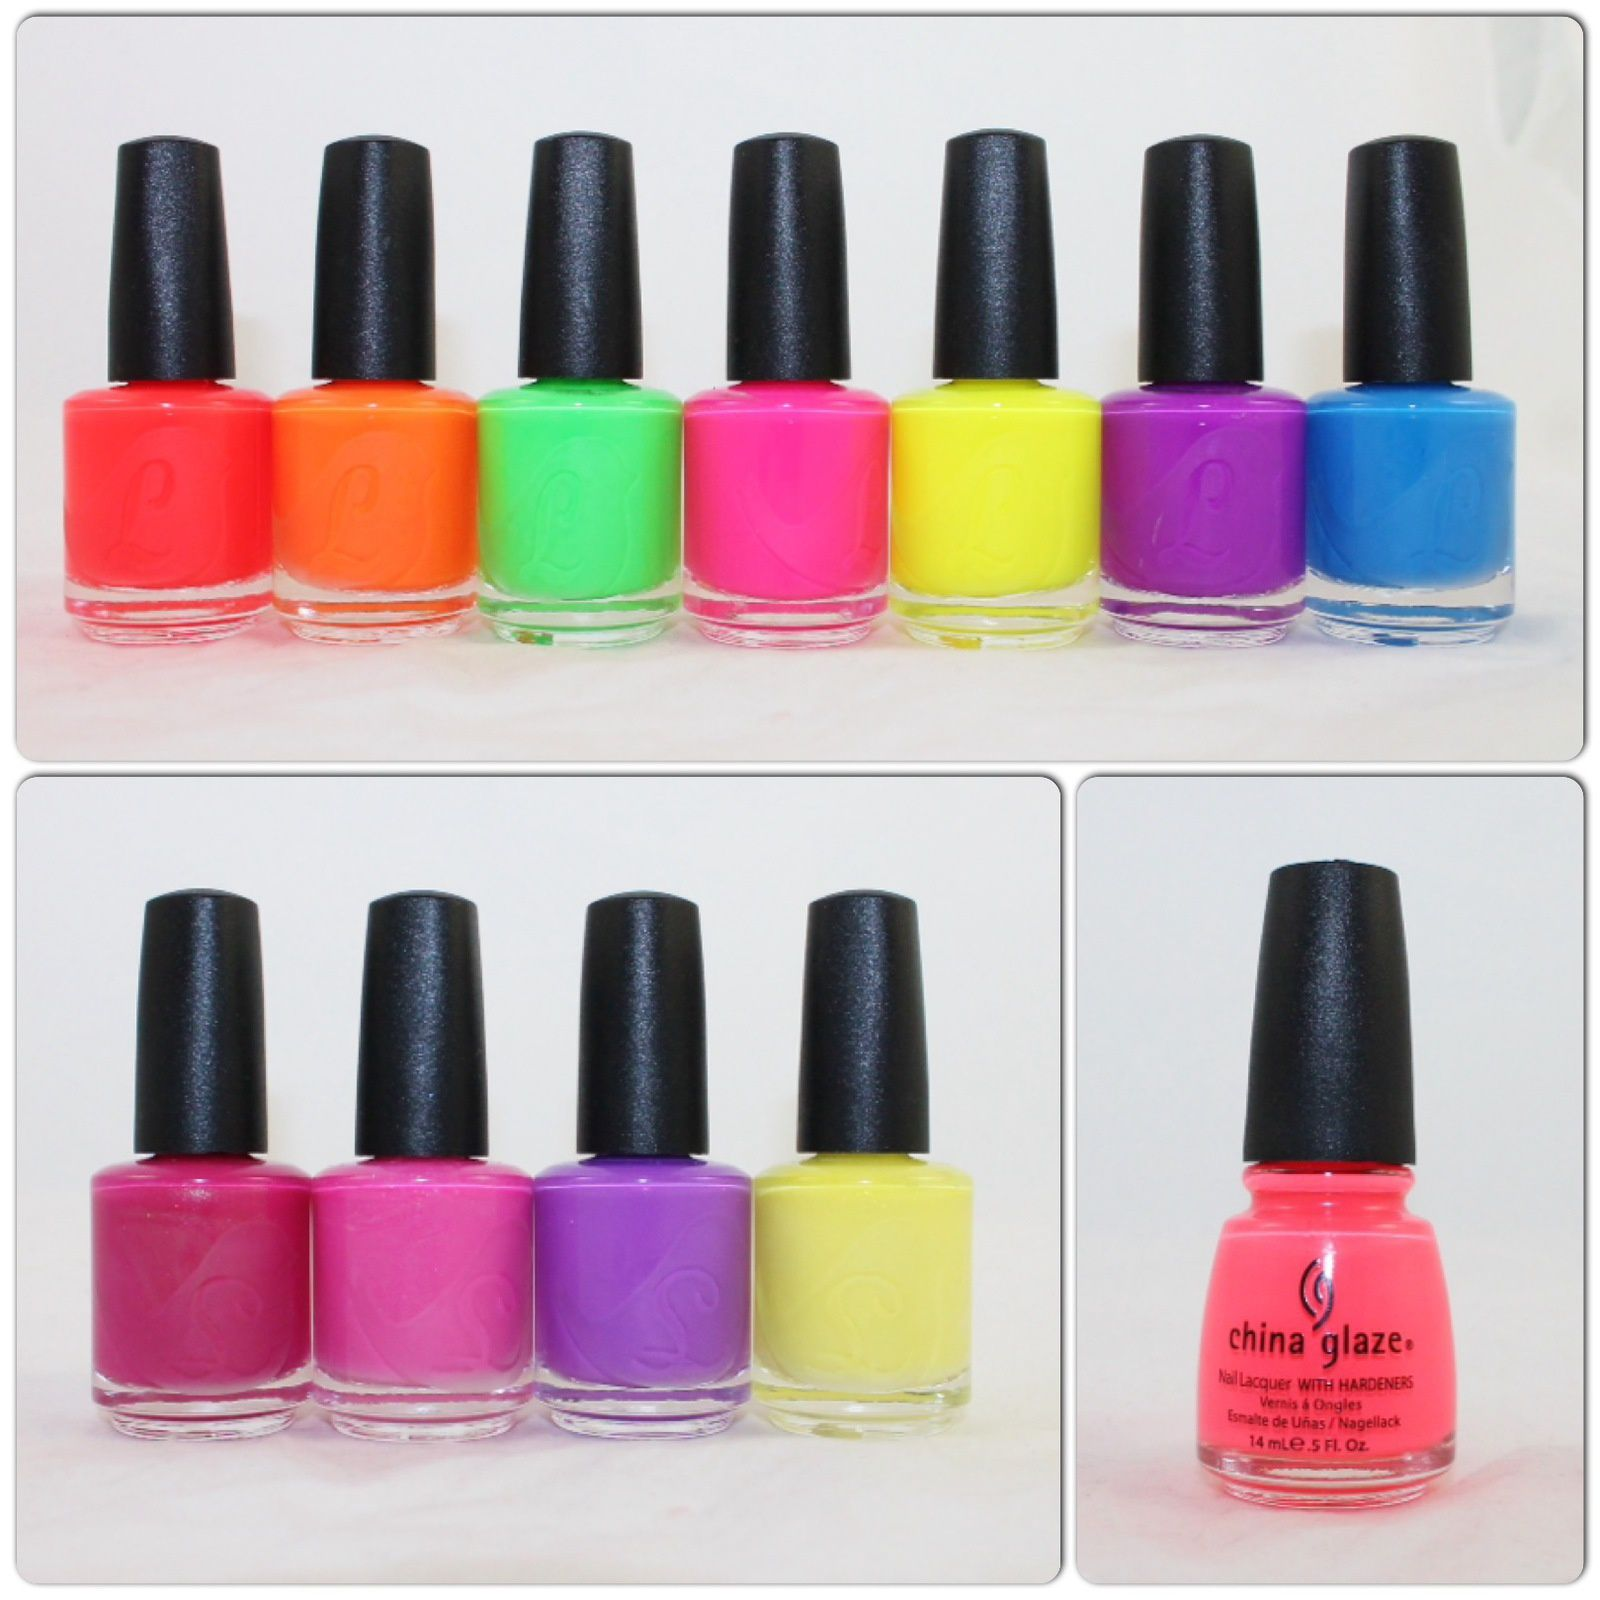 Lou it Yourself Beg the Question, The Rest is History, Avoid it Like the Plague, Selling like Hotcakes, Let Bygones Be Bygones, Car Got Your Tongue?, When It Rains it Pours, I'm Fonda your Flora, Street Petaler, Ultra Violets, Buzz on the Streets. China Glaze Flip Flop Fantasy.